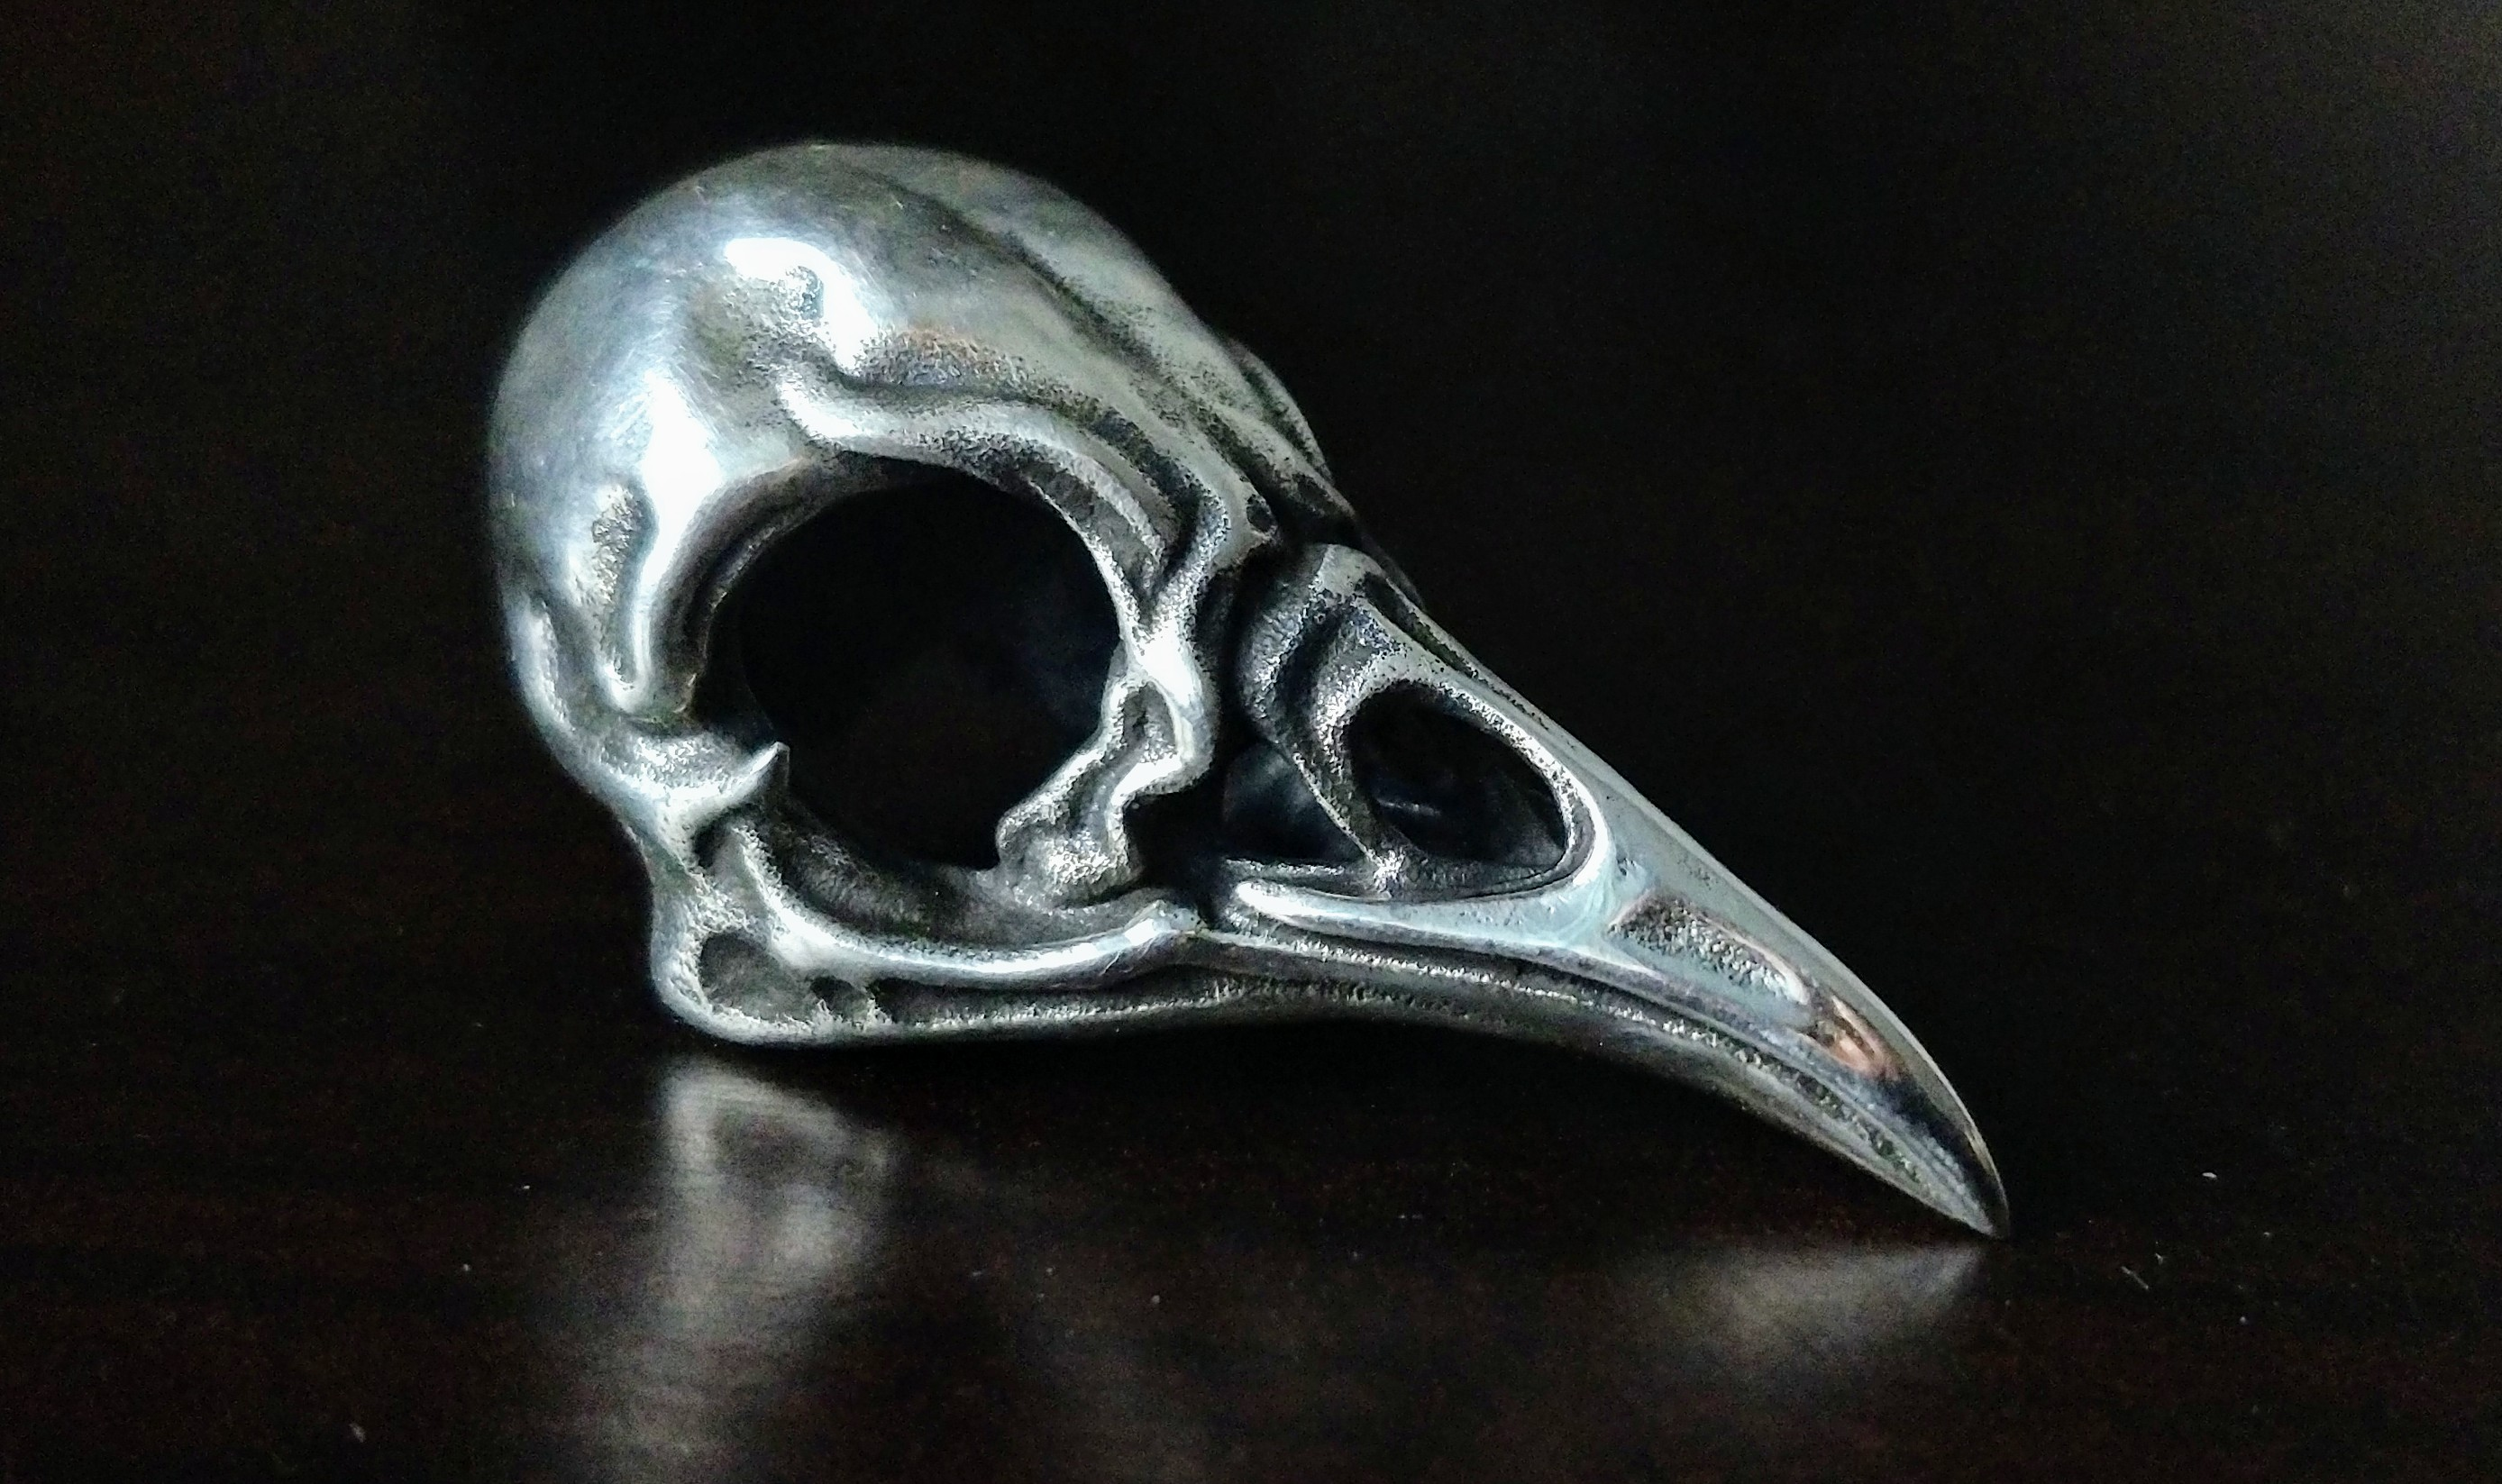 Example of a 3D printed model using antique finish